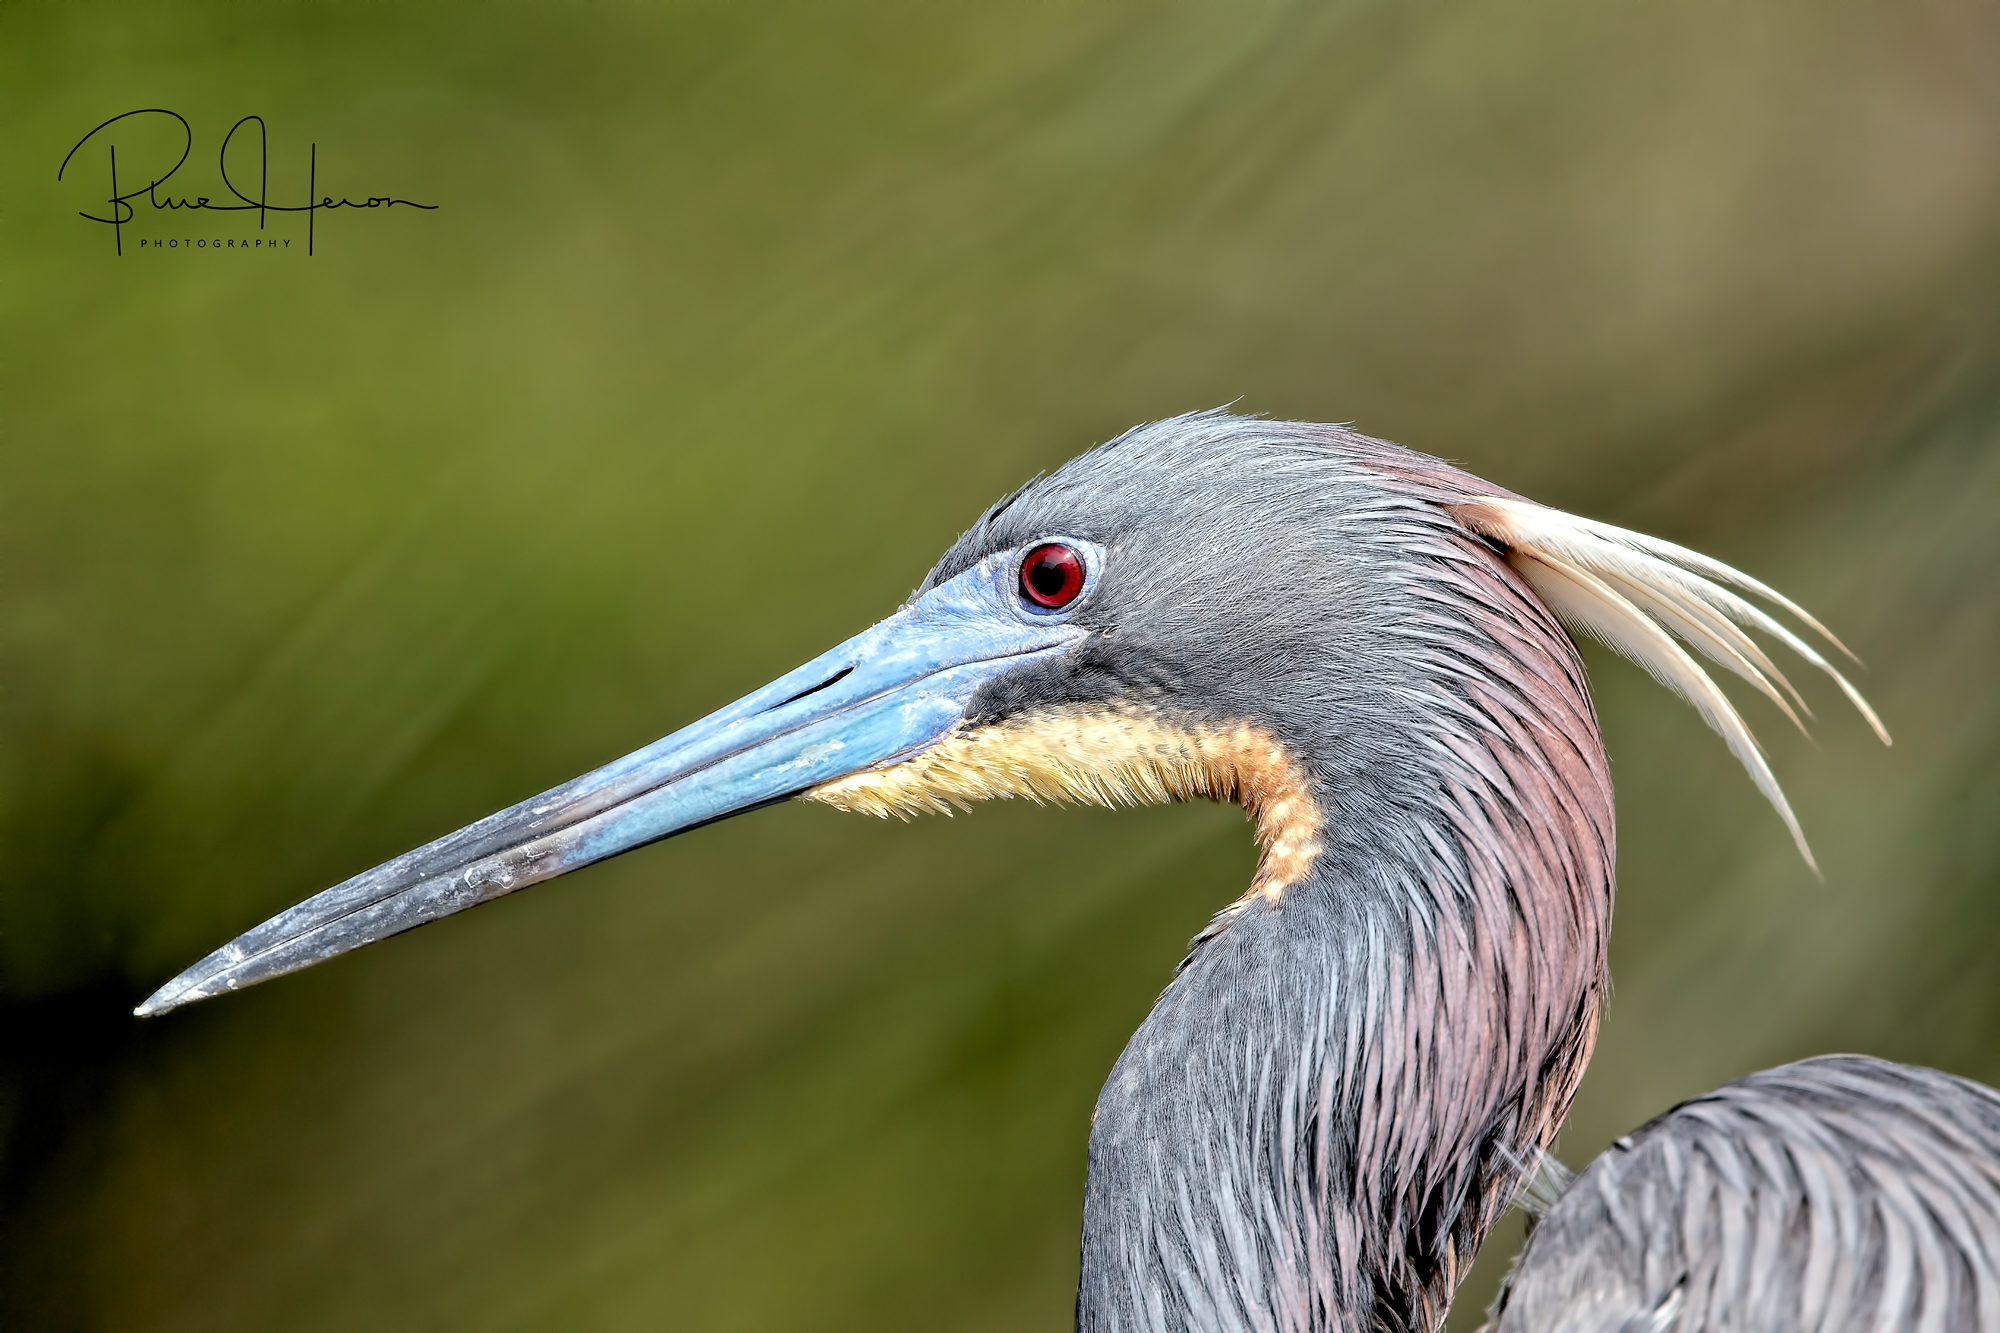 Tricolored Heron in breeding plumage...geesh and me ready for Medicare...birds got it made..